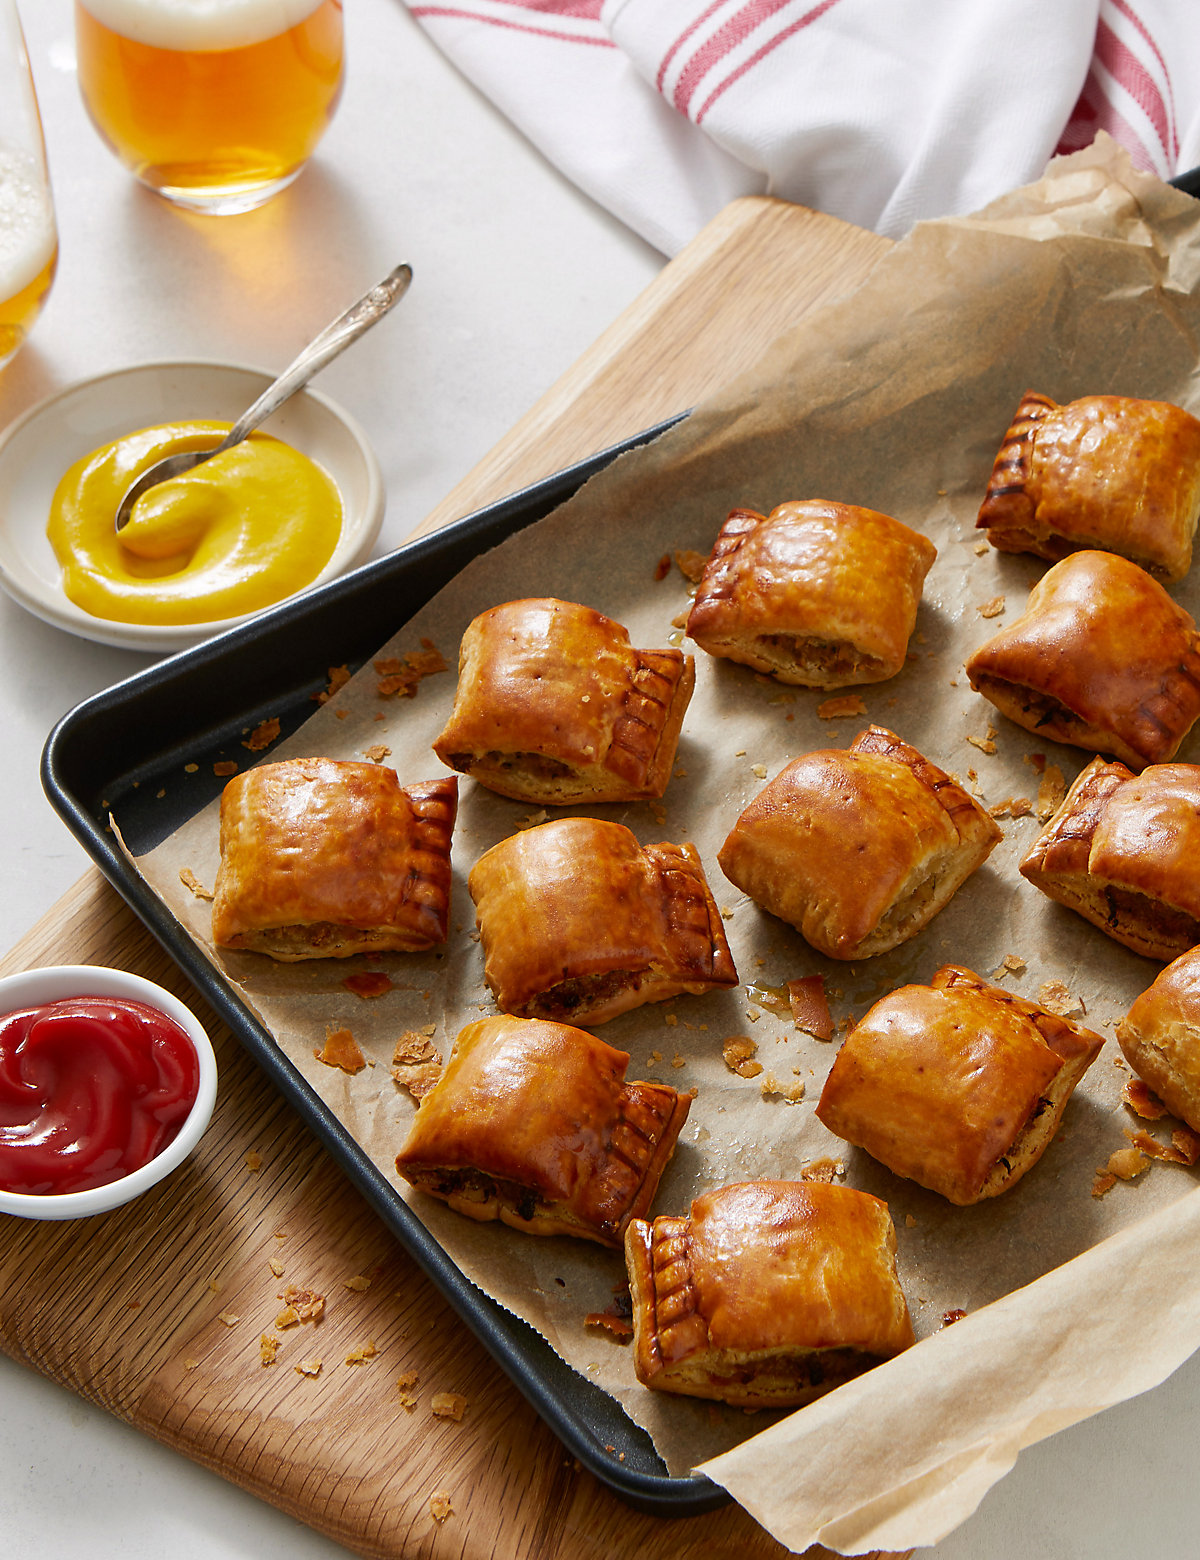 Marks and Spencer | Handcrafted Sausage Rolls